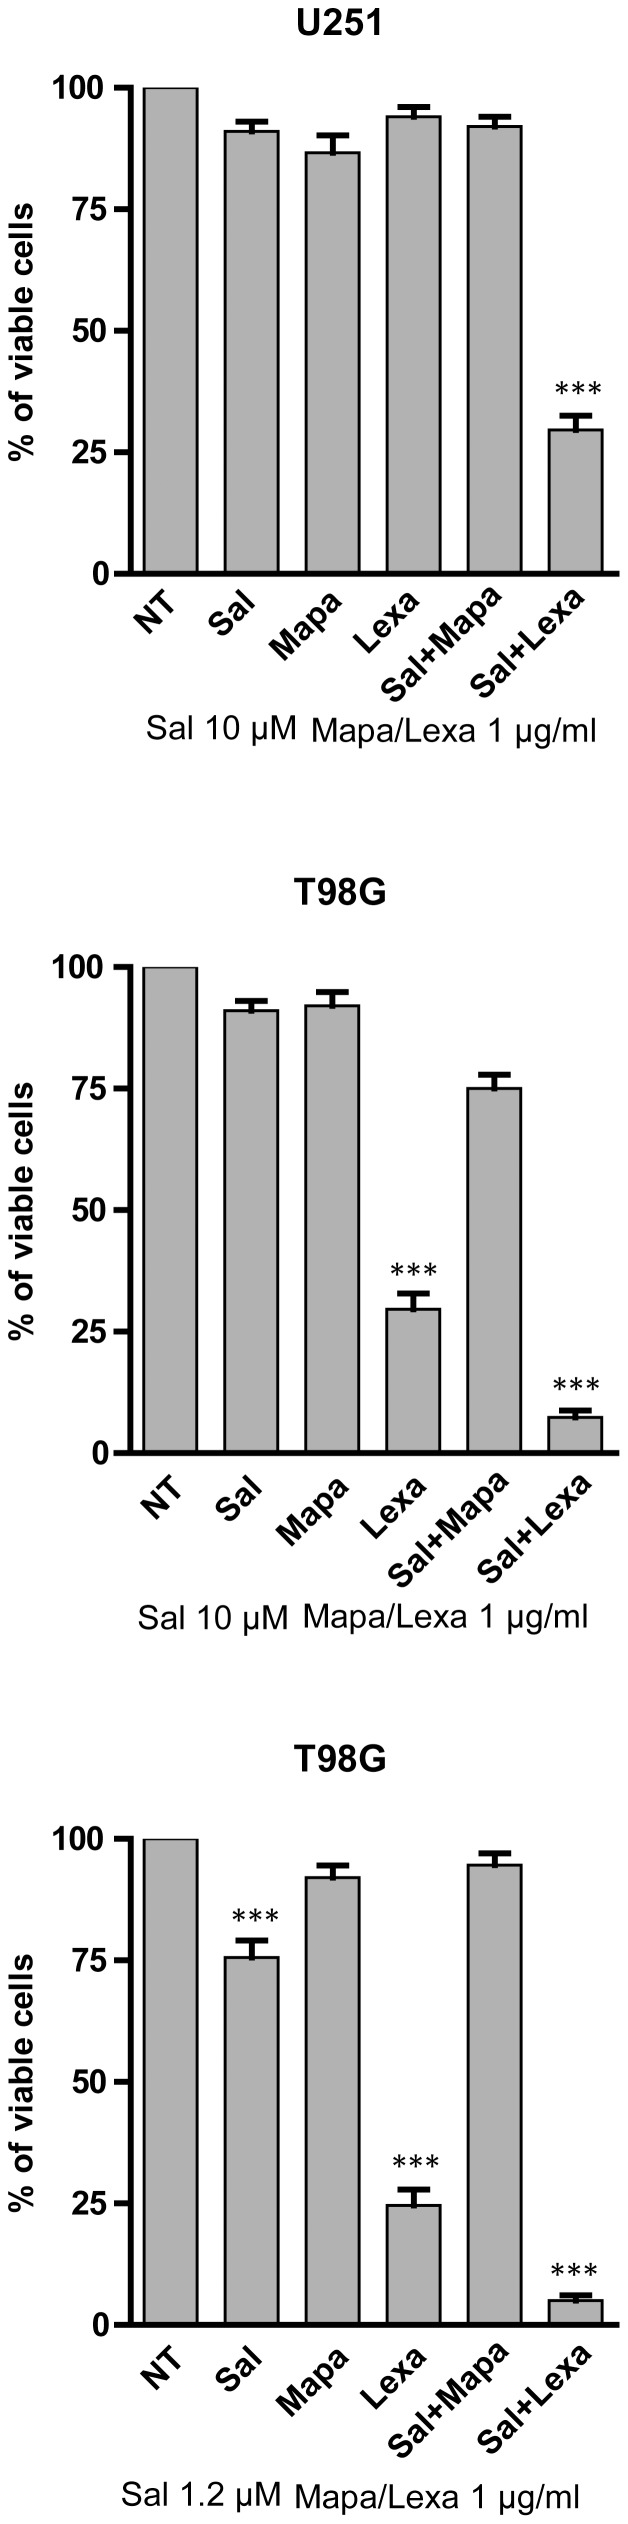 Effect of agonistic anti-TRAIL-R1 (Mapatumamab) or anti-TRAIL-R2 (Lexatumamab) mAbs on the induction of cell death of T98G, U87MG and U251 cell lines. The cells were incubated for 24(Sal), Mapatumamab (Mapa) and Lexatumamab (Lexa) and then analysed for cell vitality. The results represent the mean values ± SEM observed in three separate experiments. *** different from control (NT) at significance level p